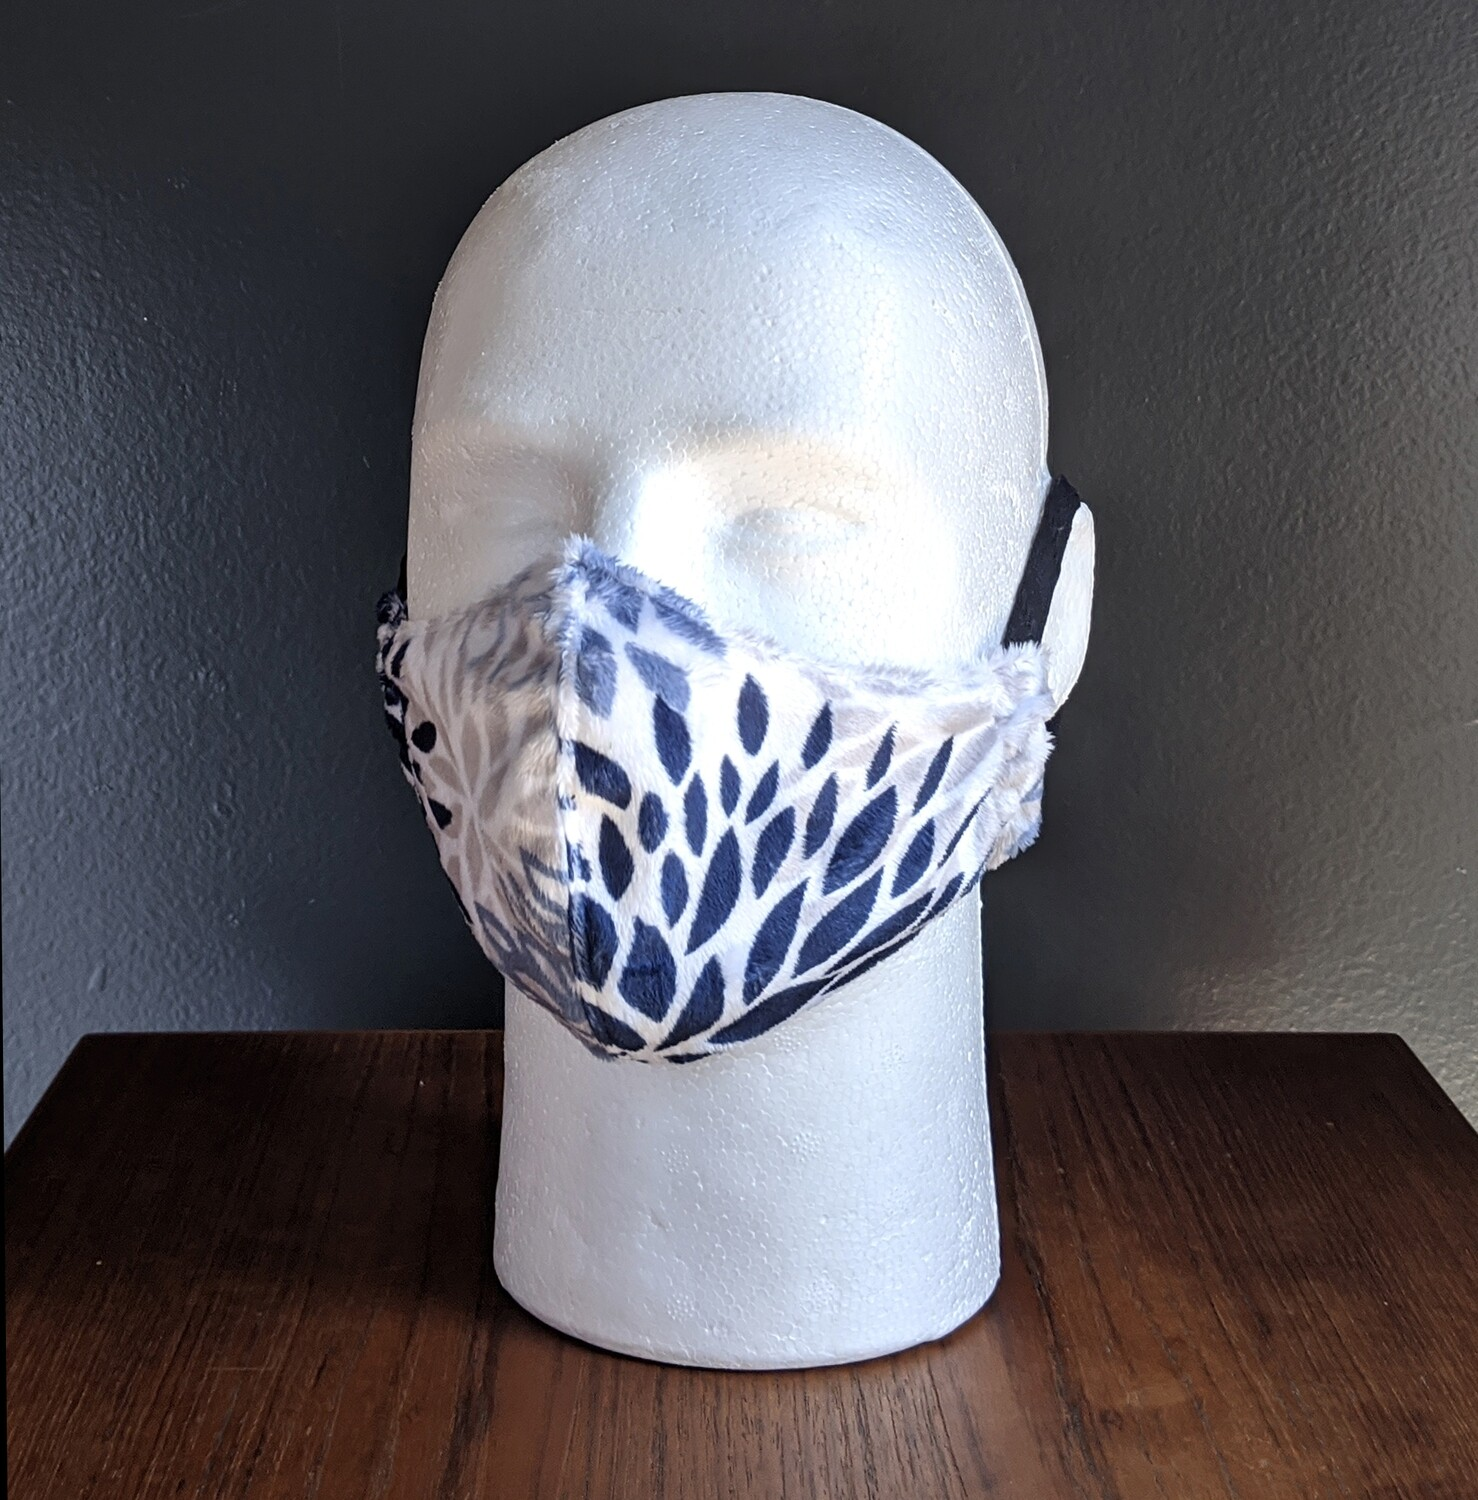 Floral Minky Costume Face Mask, Pride, Mardi Gras, Halloween. Small, Unisex, Reusable, Double Layer for Smog, Pollen, Dust, Smoke. Made in USA